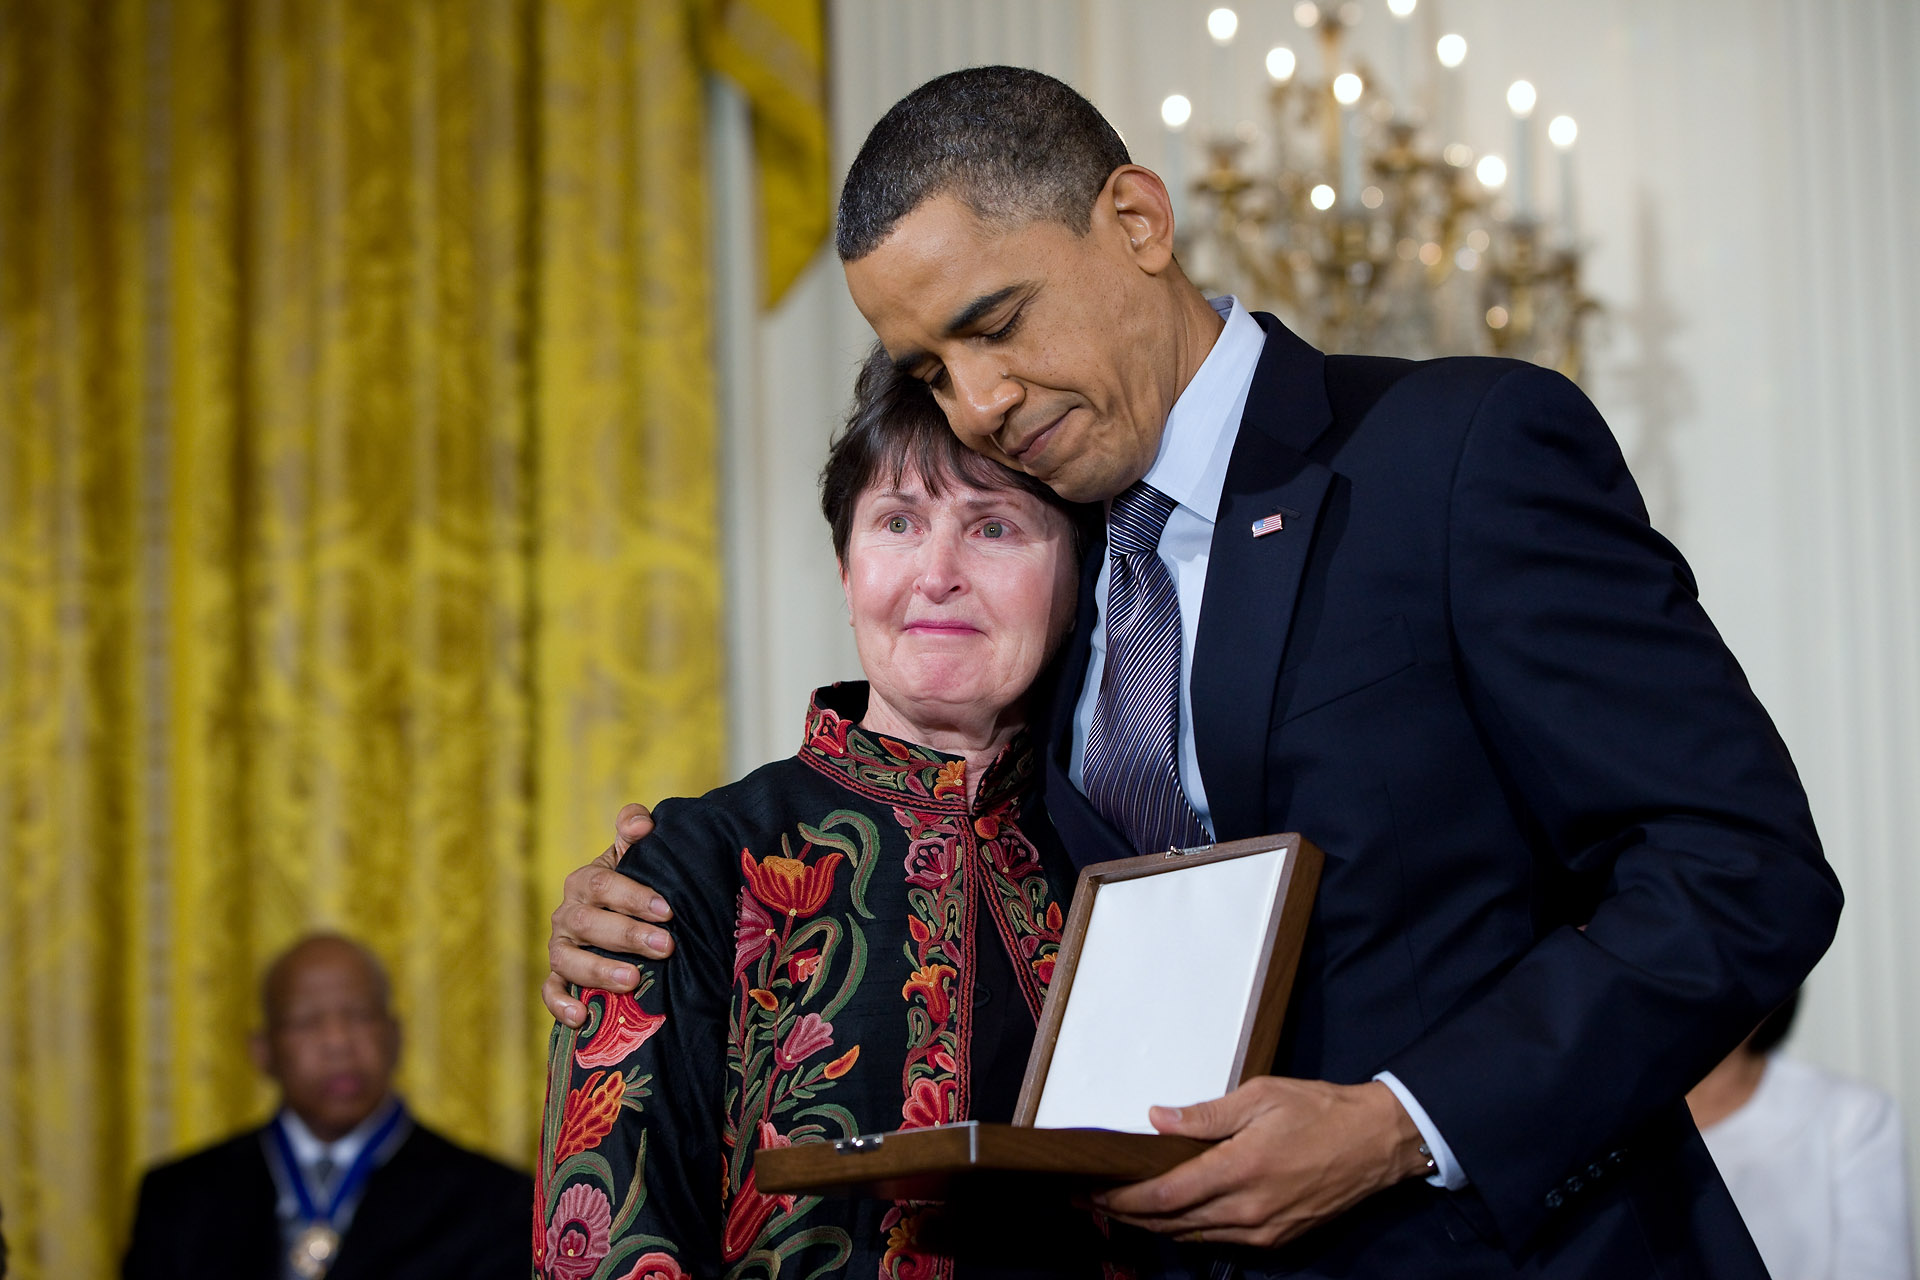 President Barack Obama awards the 2010 Presidential Medal of Freedom to Libby Little